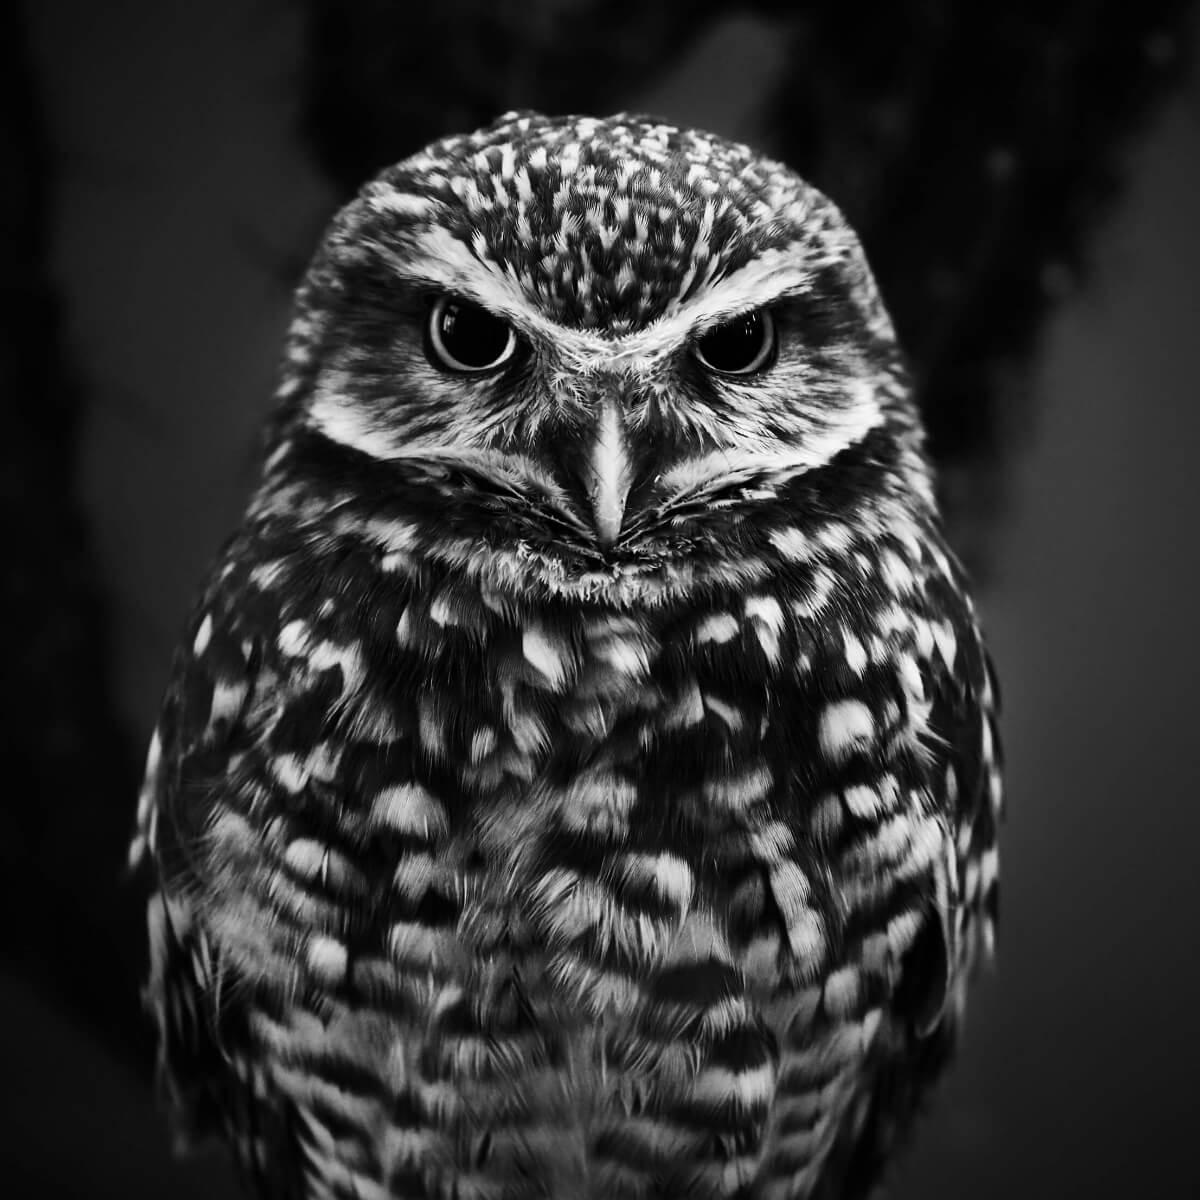 One Angry Owl